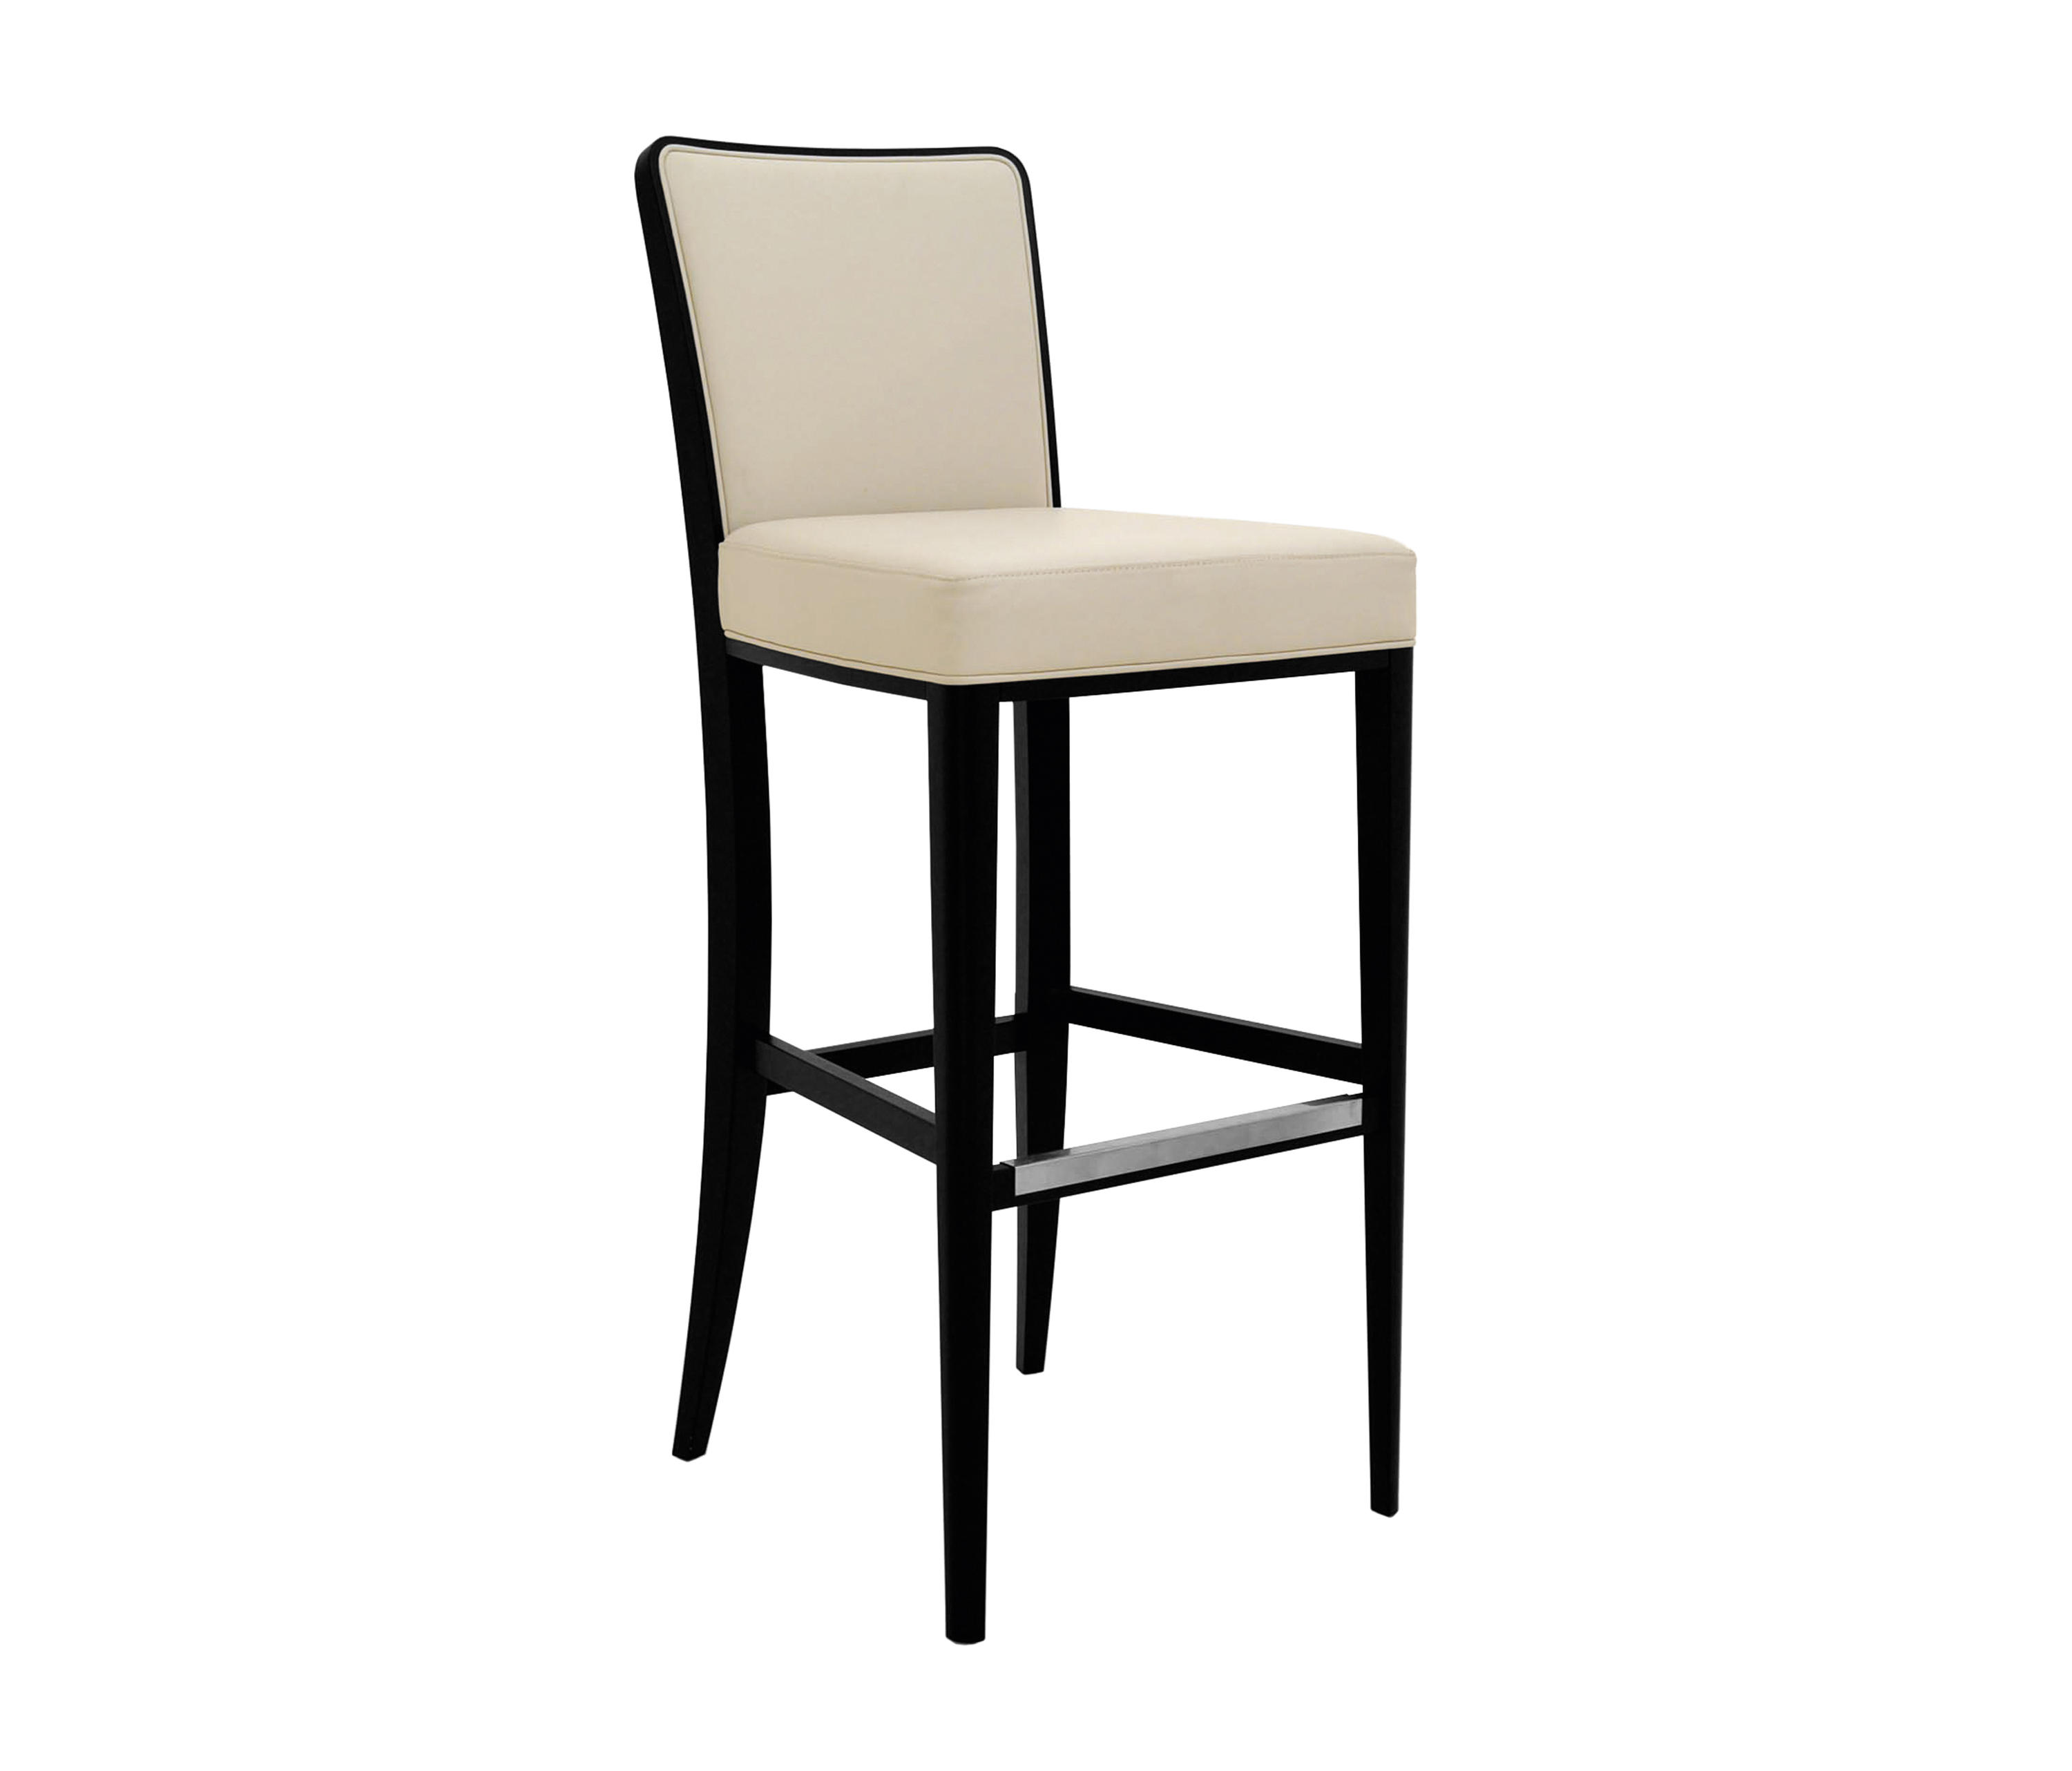 Princess | 128 42 By Tonon | Bar Stools